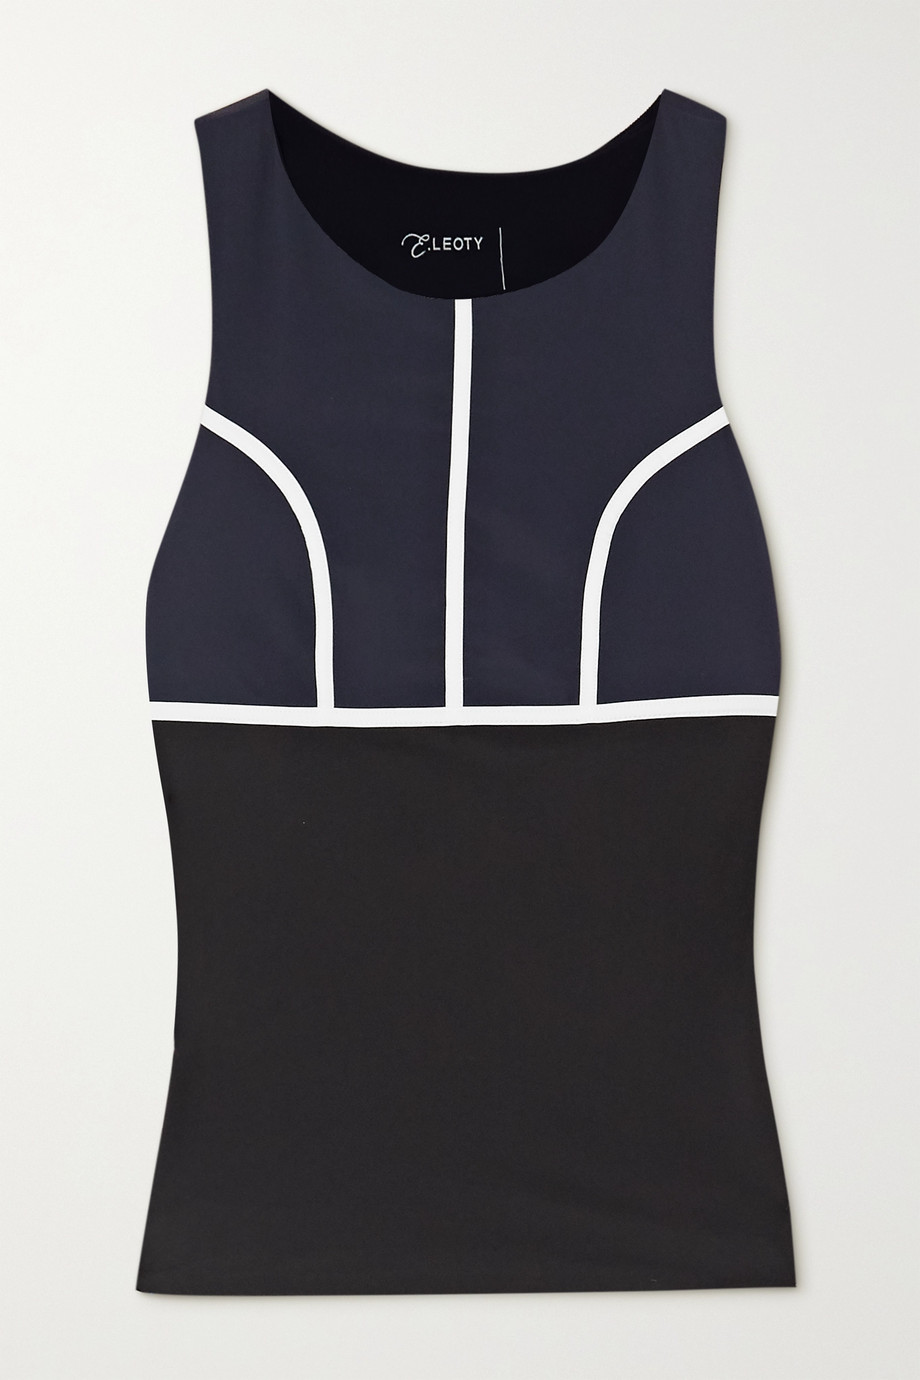 Ernest Leoty Eglantine piped stretch tank